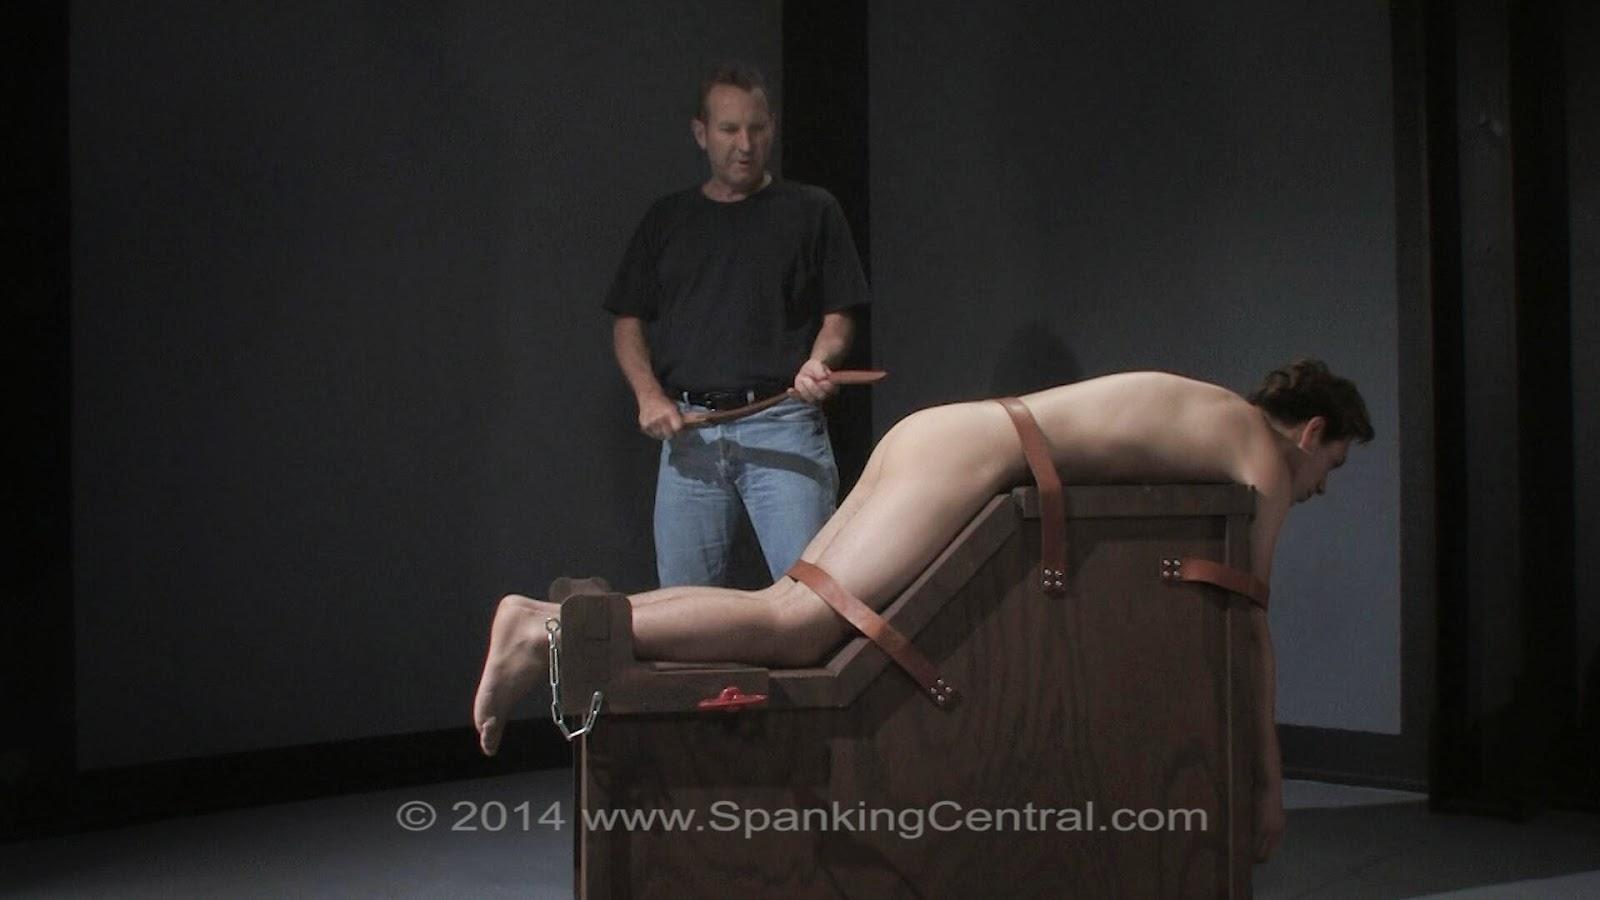 Spank central videos the way